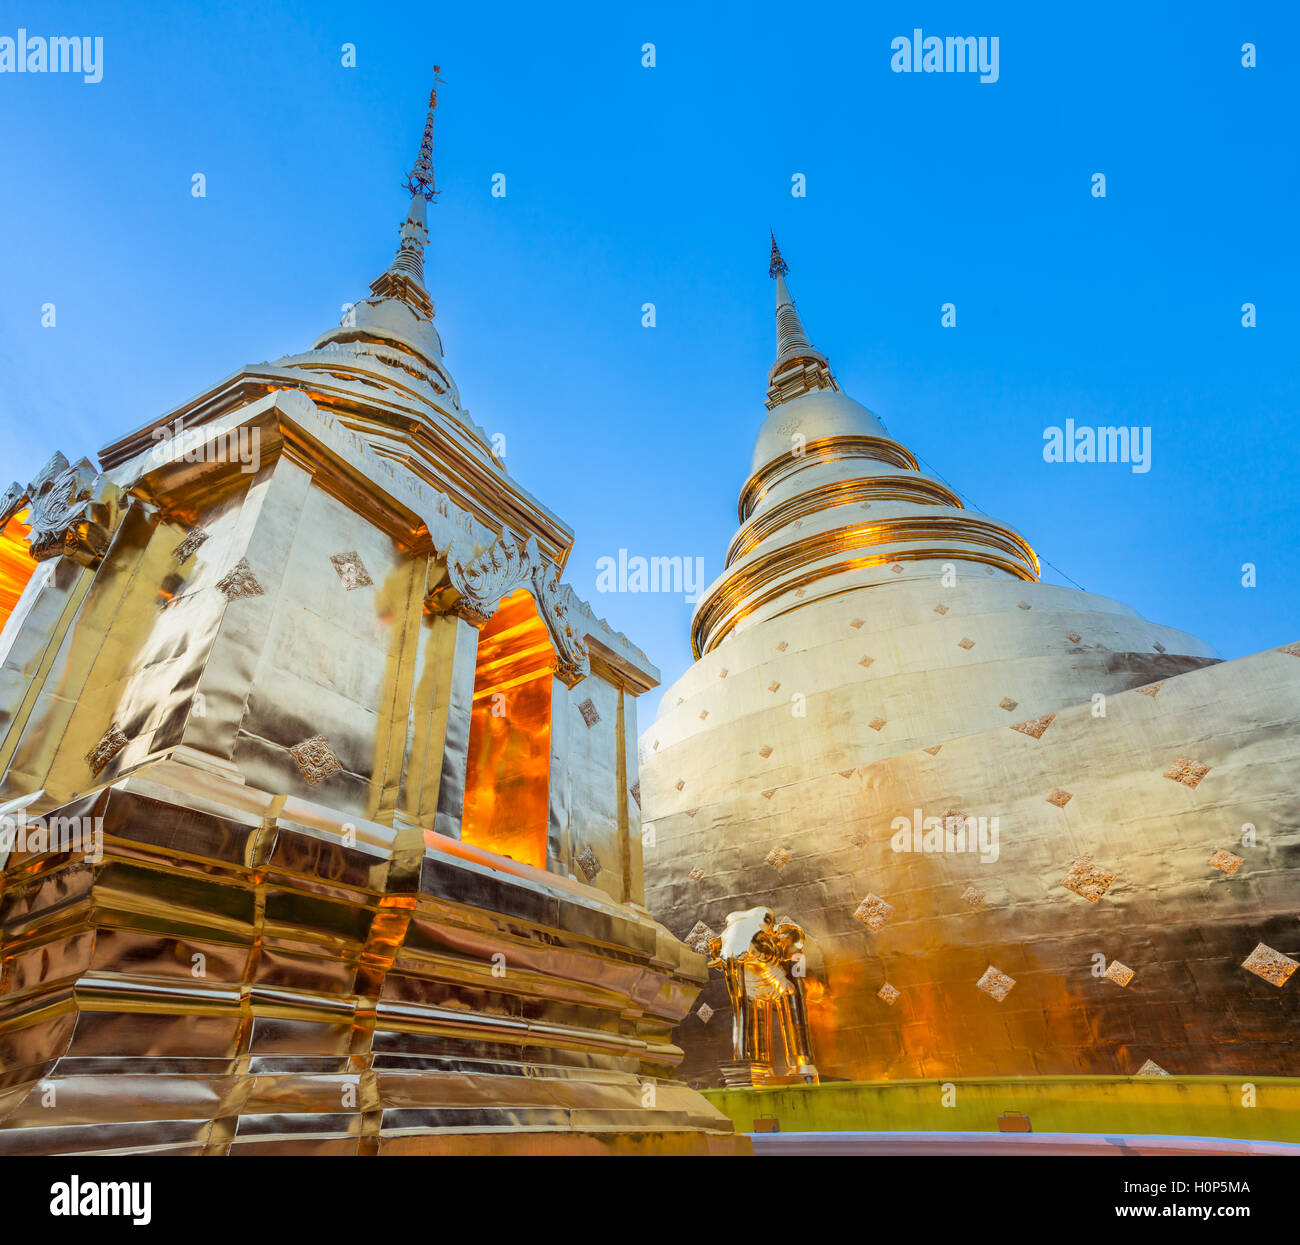 Dusk View of the golden chedi (stupa) of Wat Phra Singh temple, the most revered temple in Chiang Mai, Thailand. Stock Photo